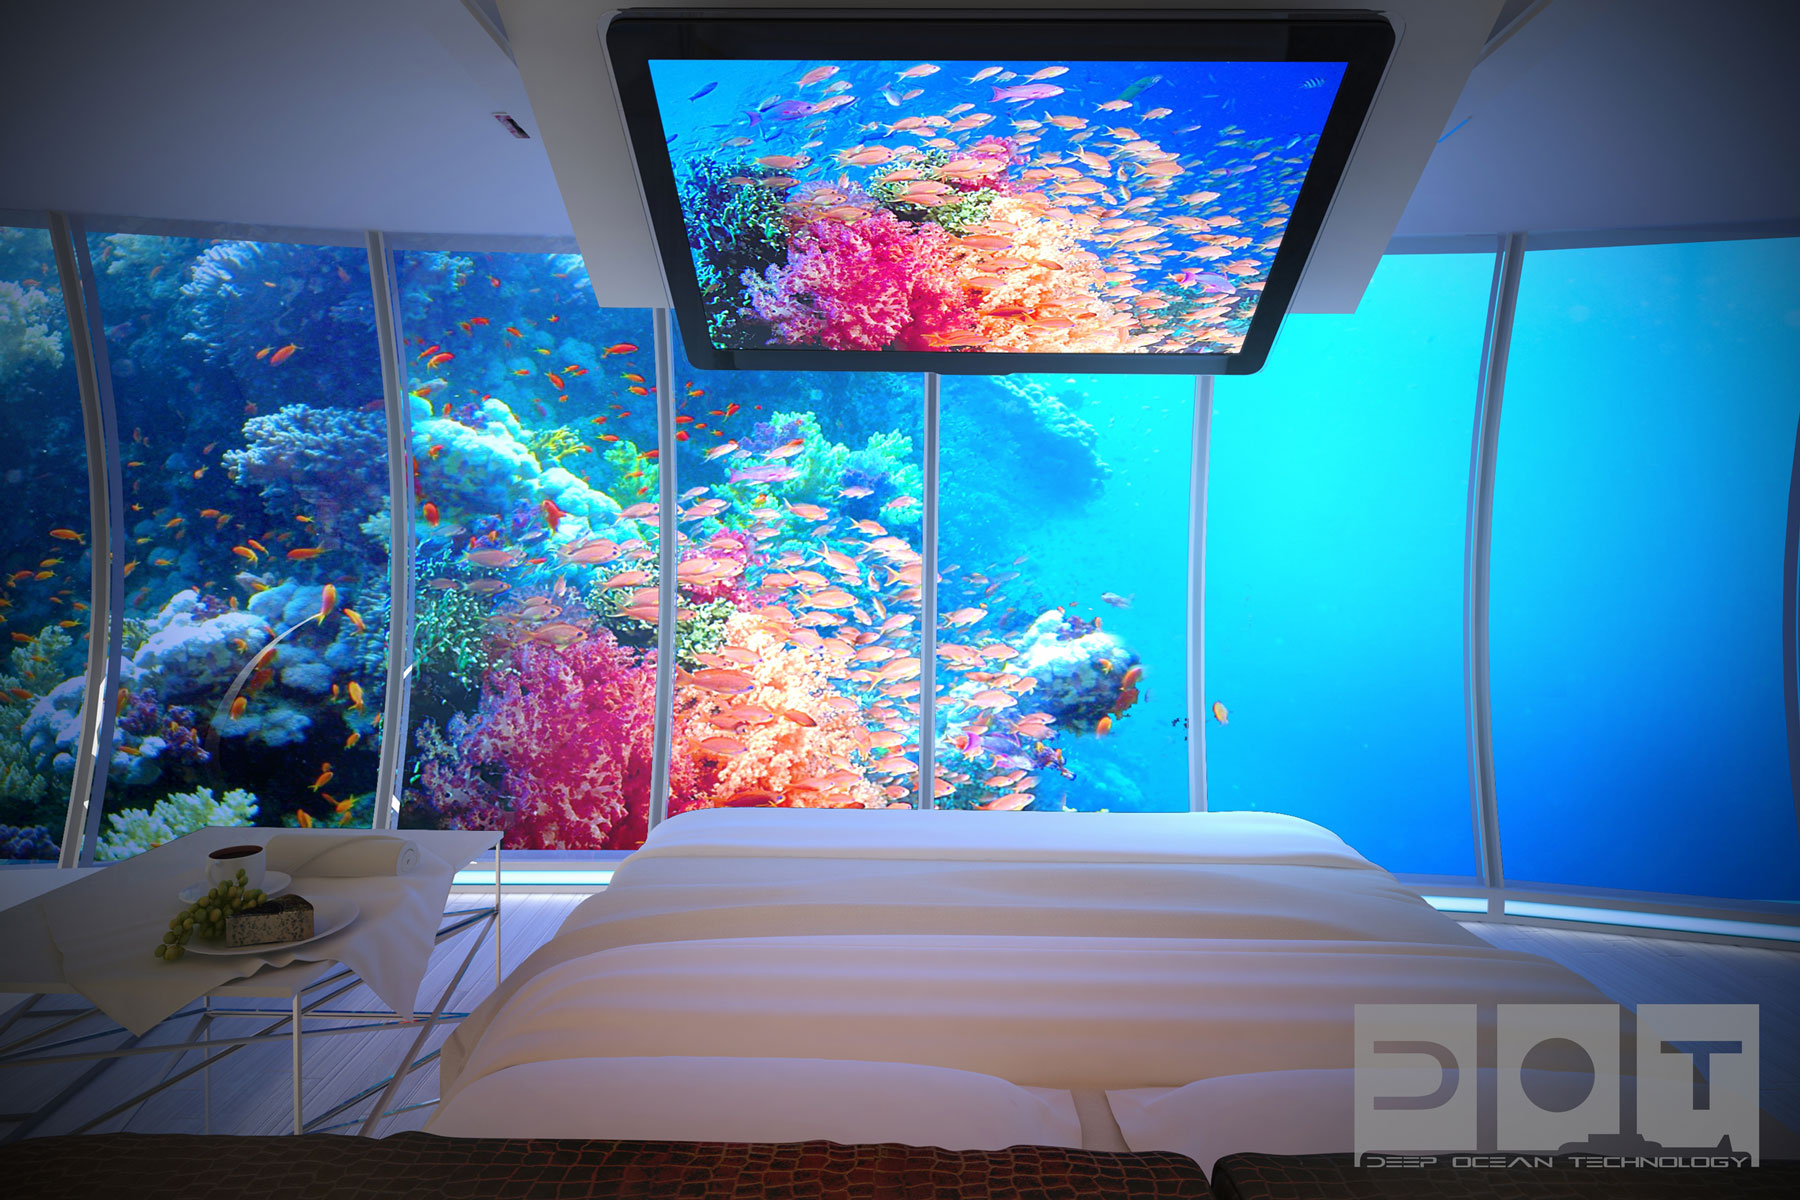 The Water Discus Underwater Hotel planned for Dubai (13)